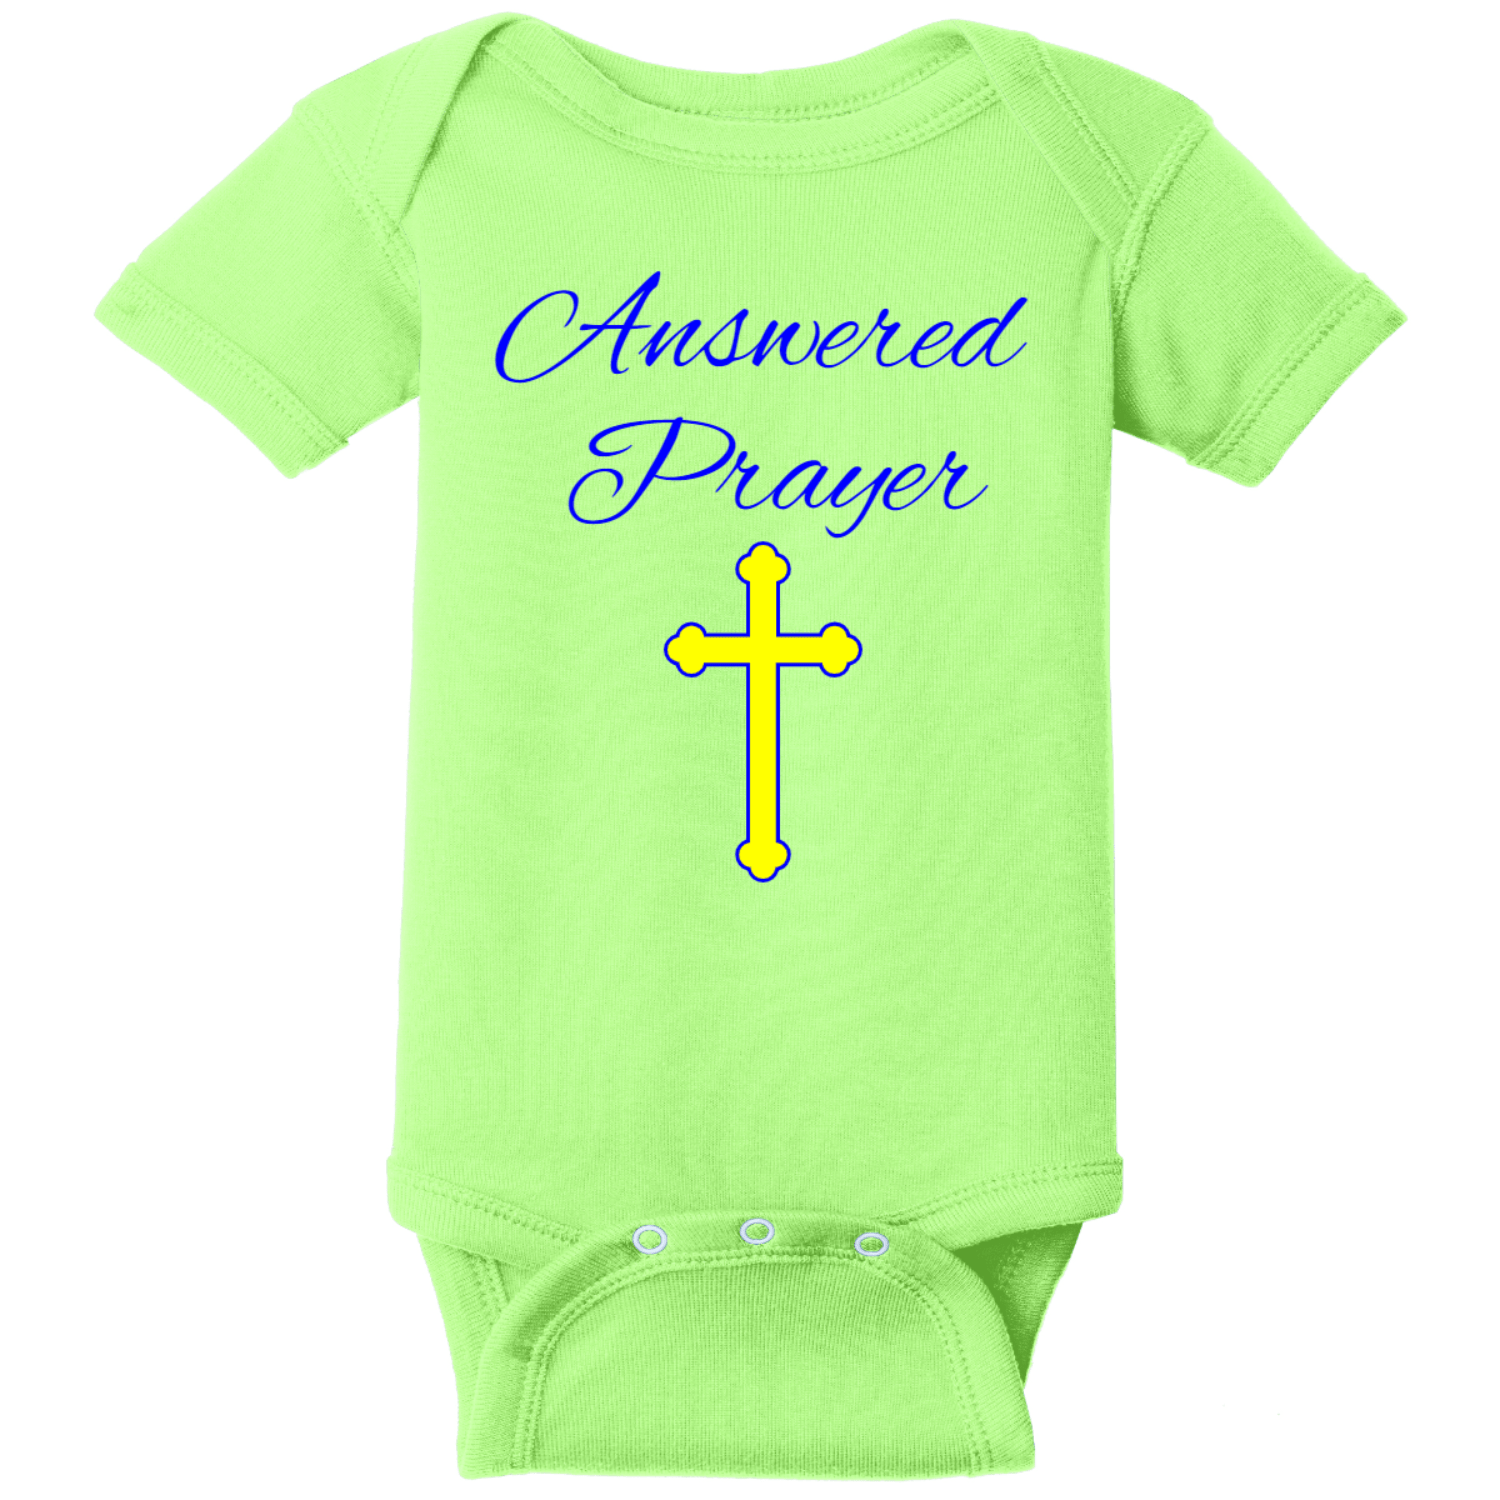 Prayer Answered Infant Onsie Key Lime Rabbit Skins Infant Short Sleeve Infant Rib Bodysuit RS4400